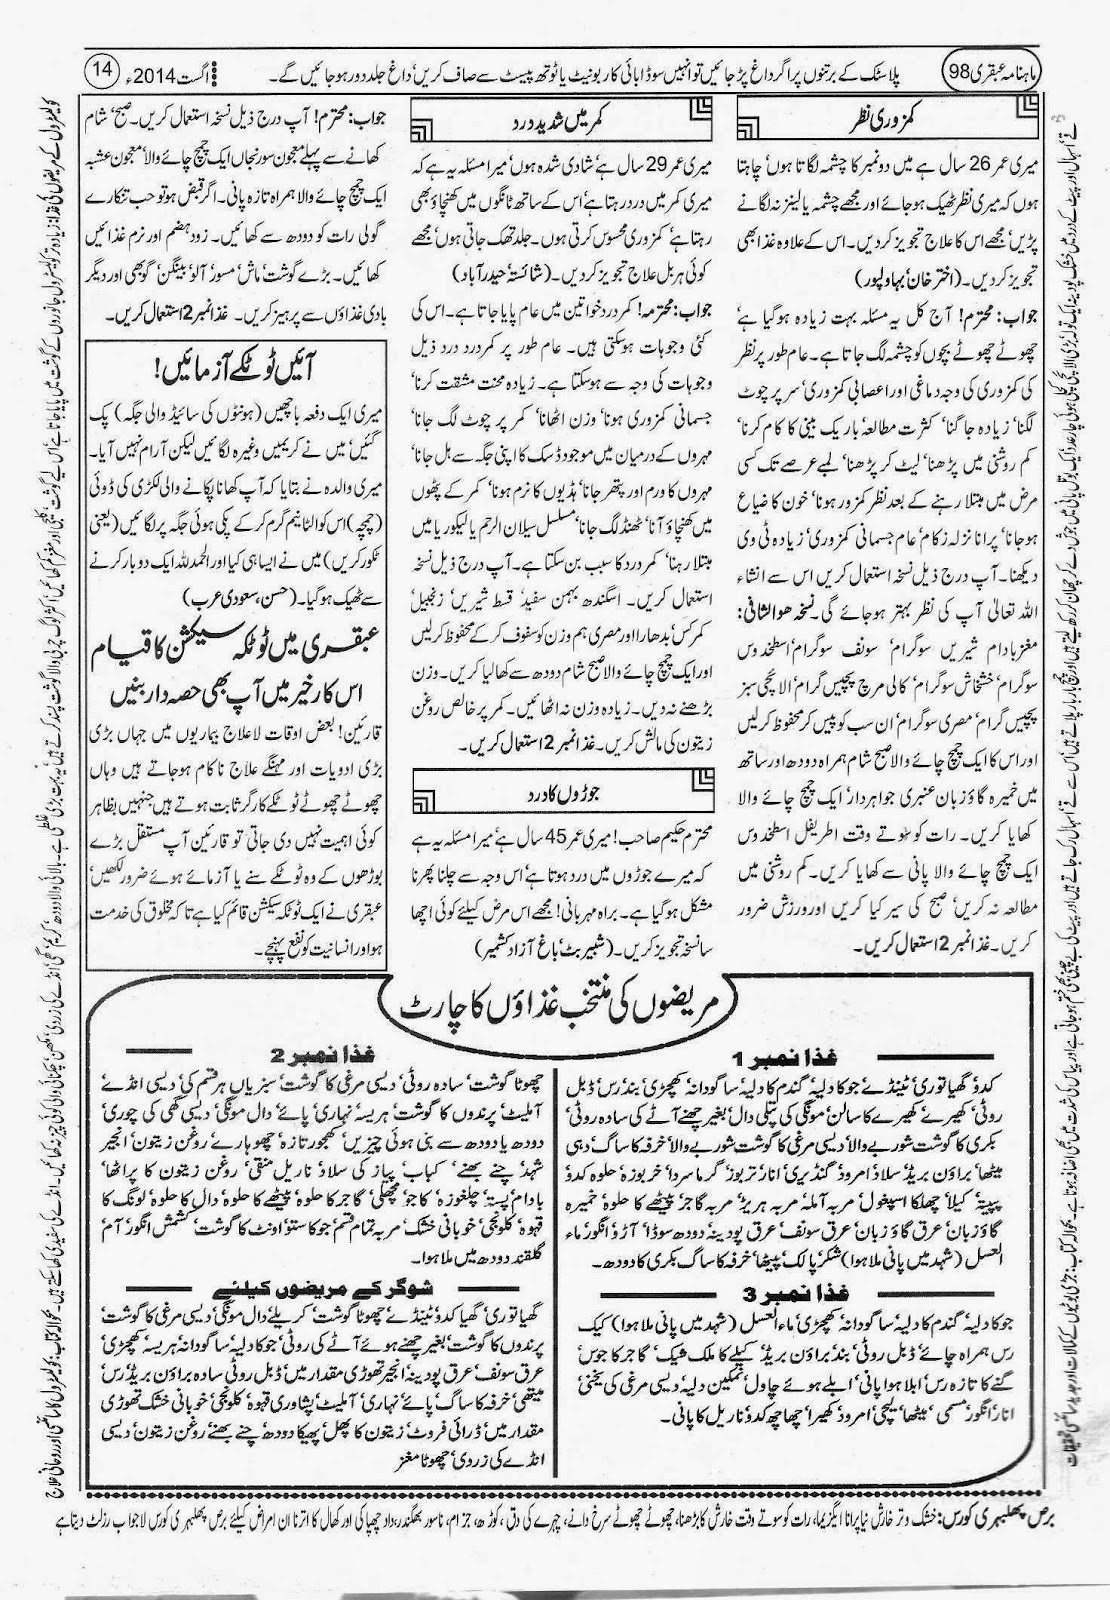 Ubqari August 2014 Page 14